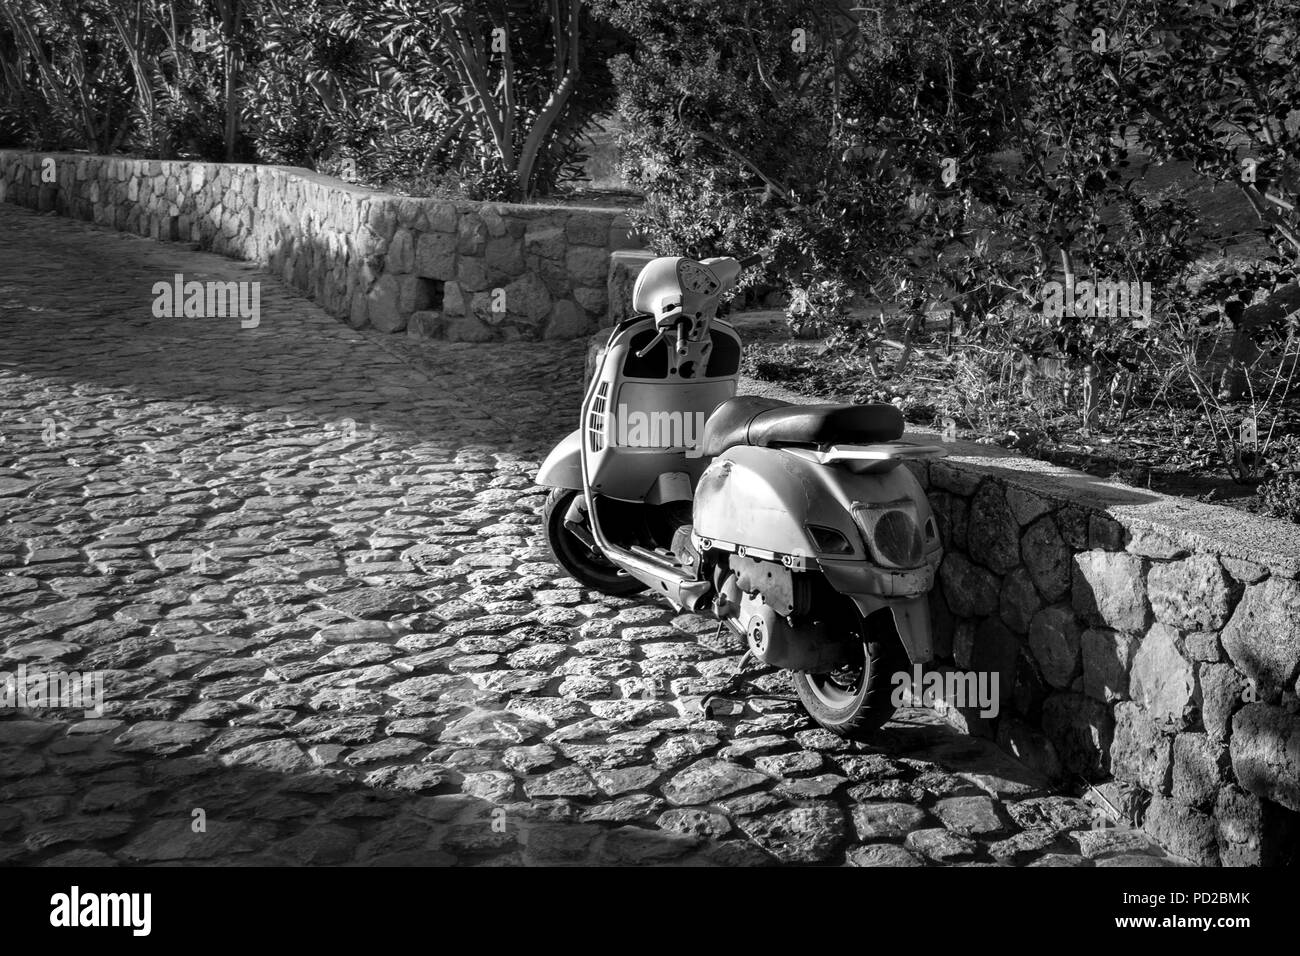 This is a black and white photograph of a moped parked on a cobblestone road.  the morning sun is shining onto the scooter. - Stock Image